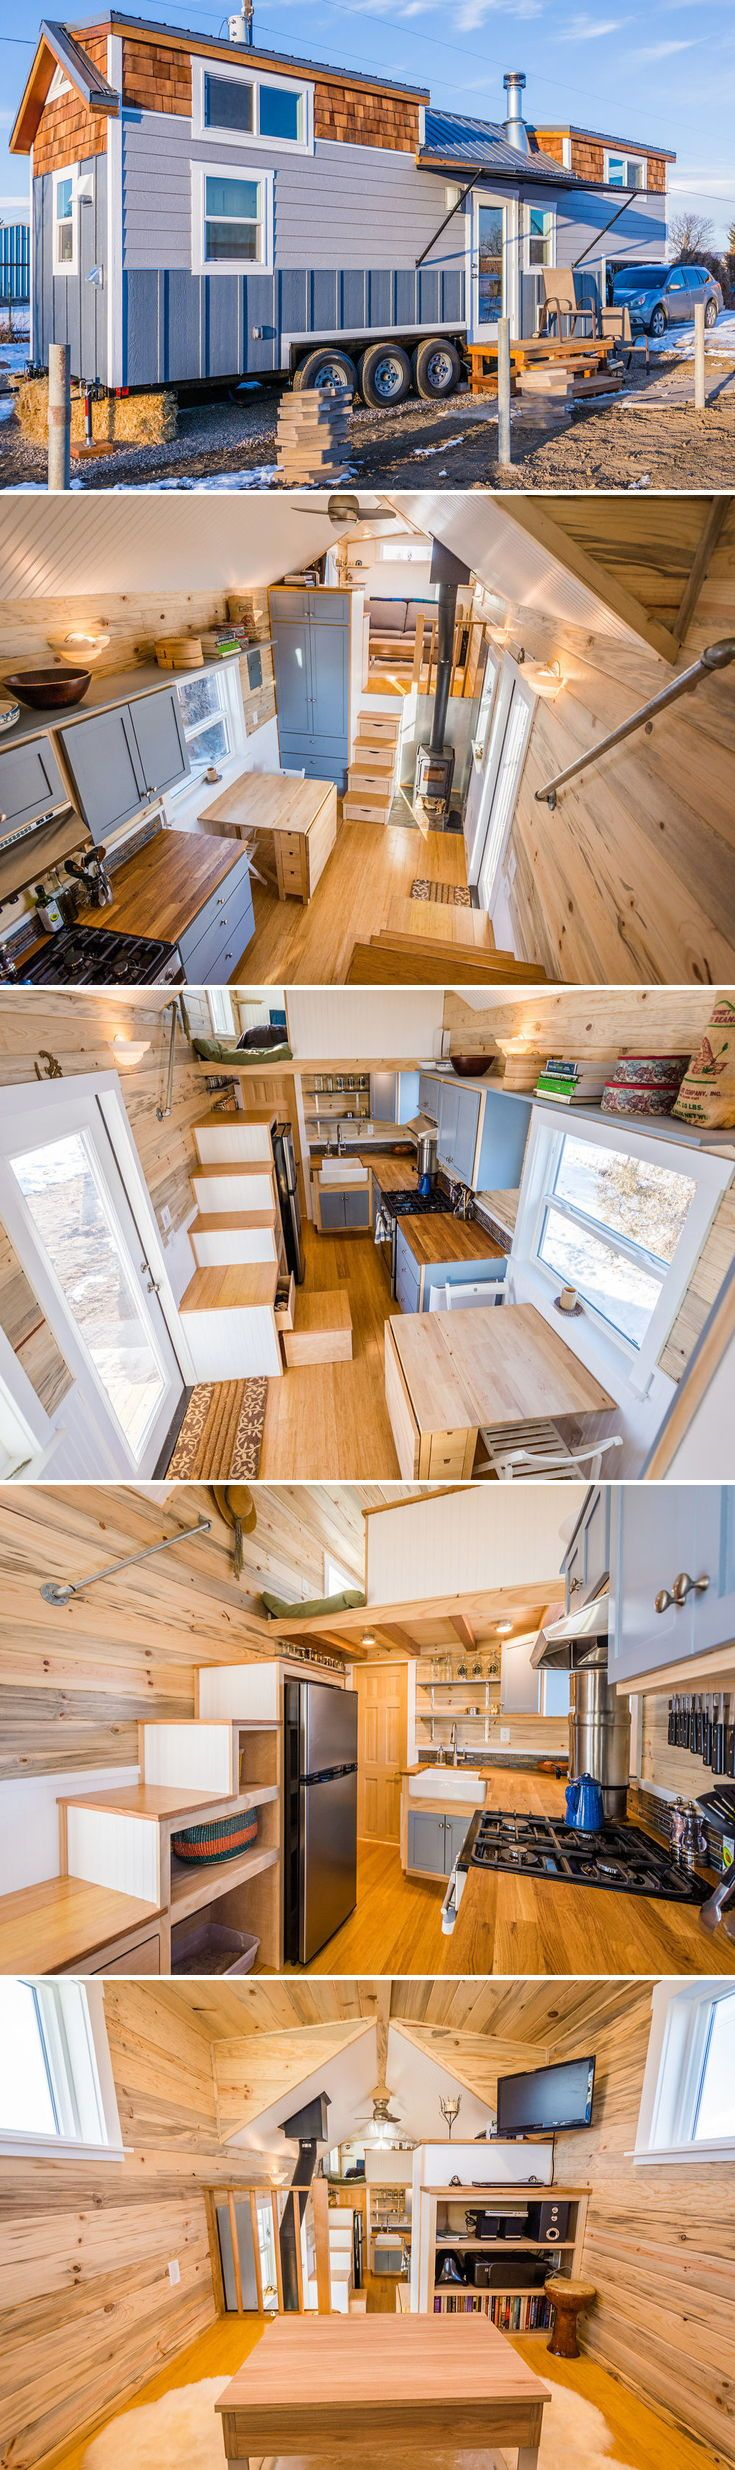 best tinyhouse images on pinterest small houses tiny house